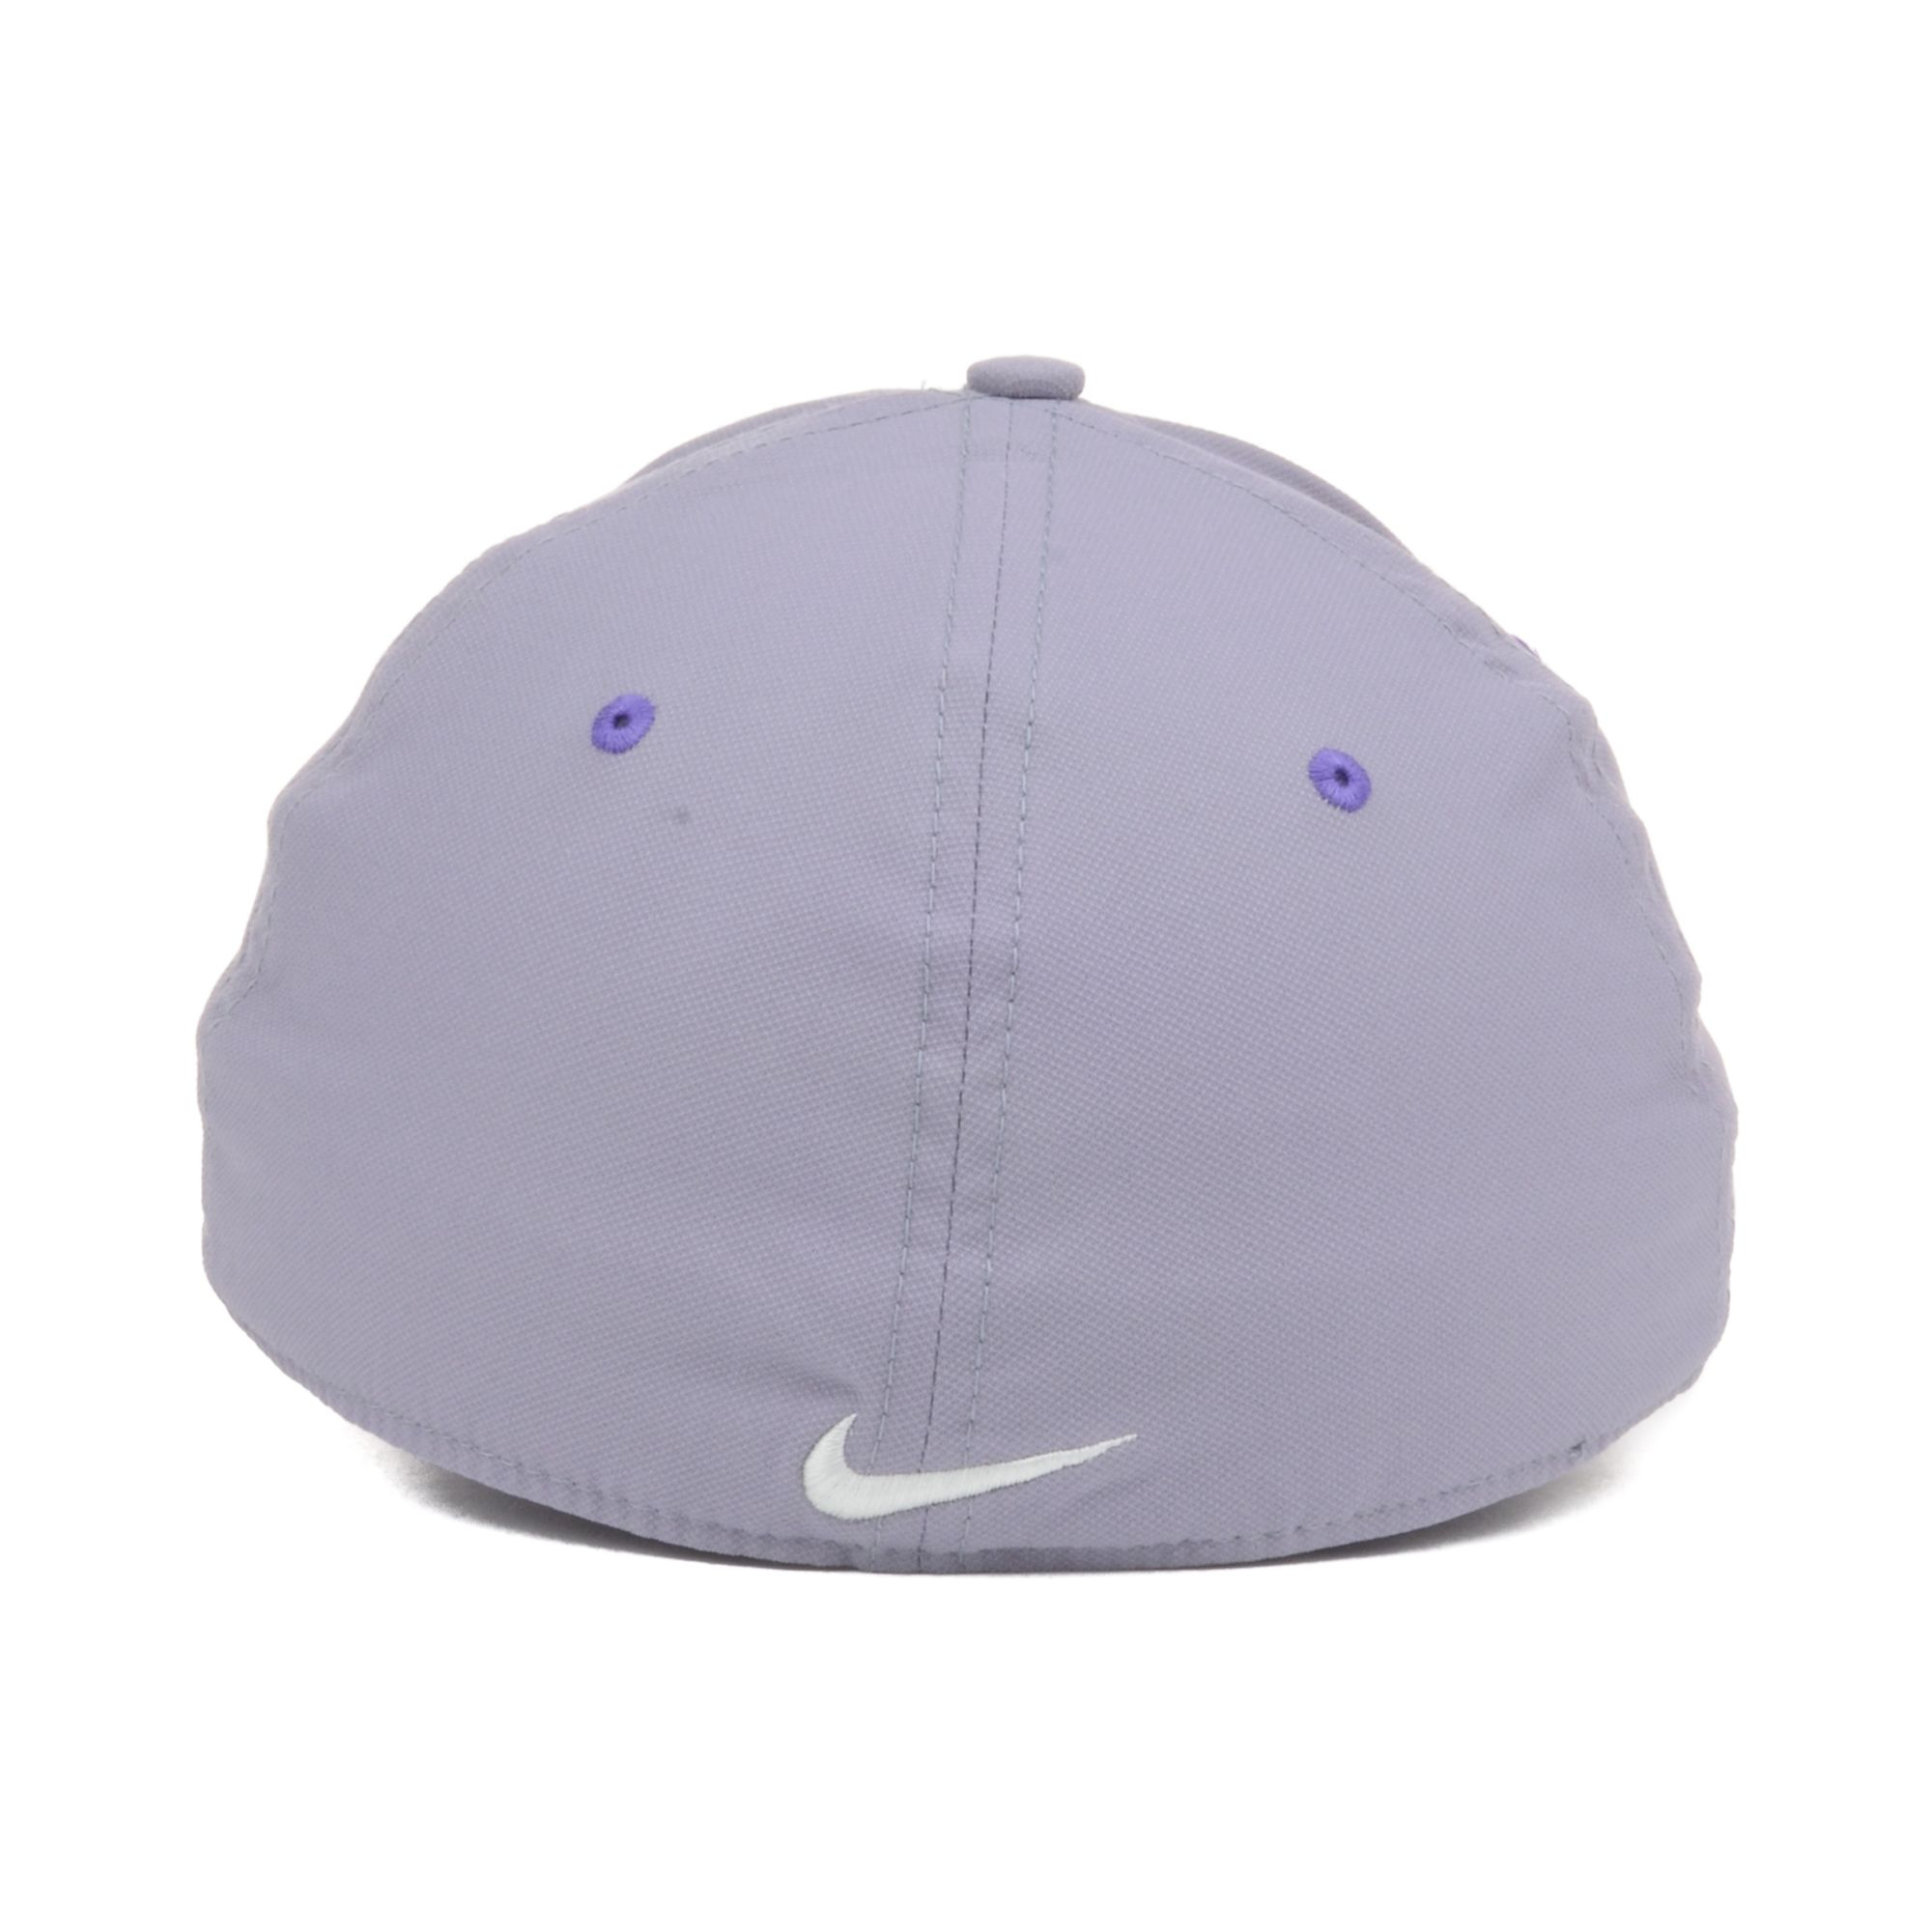 buy online 3ac8c 6d1a0 ... usa lyst nike washington huskies superfan swf cap in gray for men d14a5  9cee6